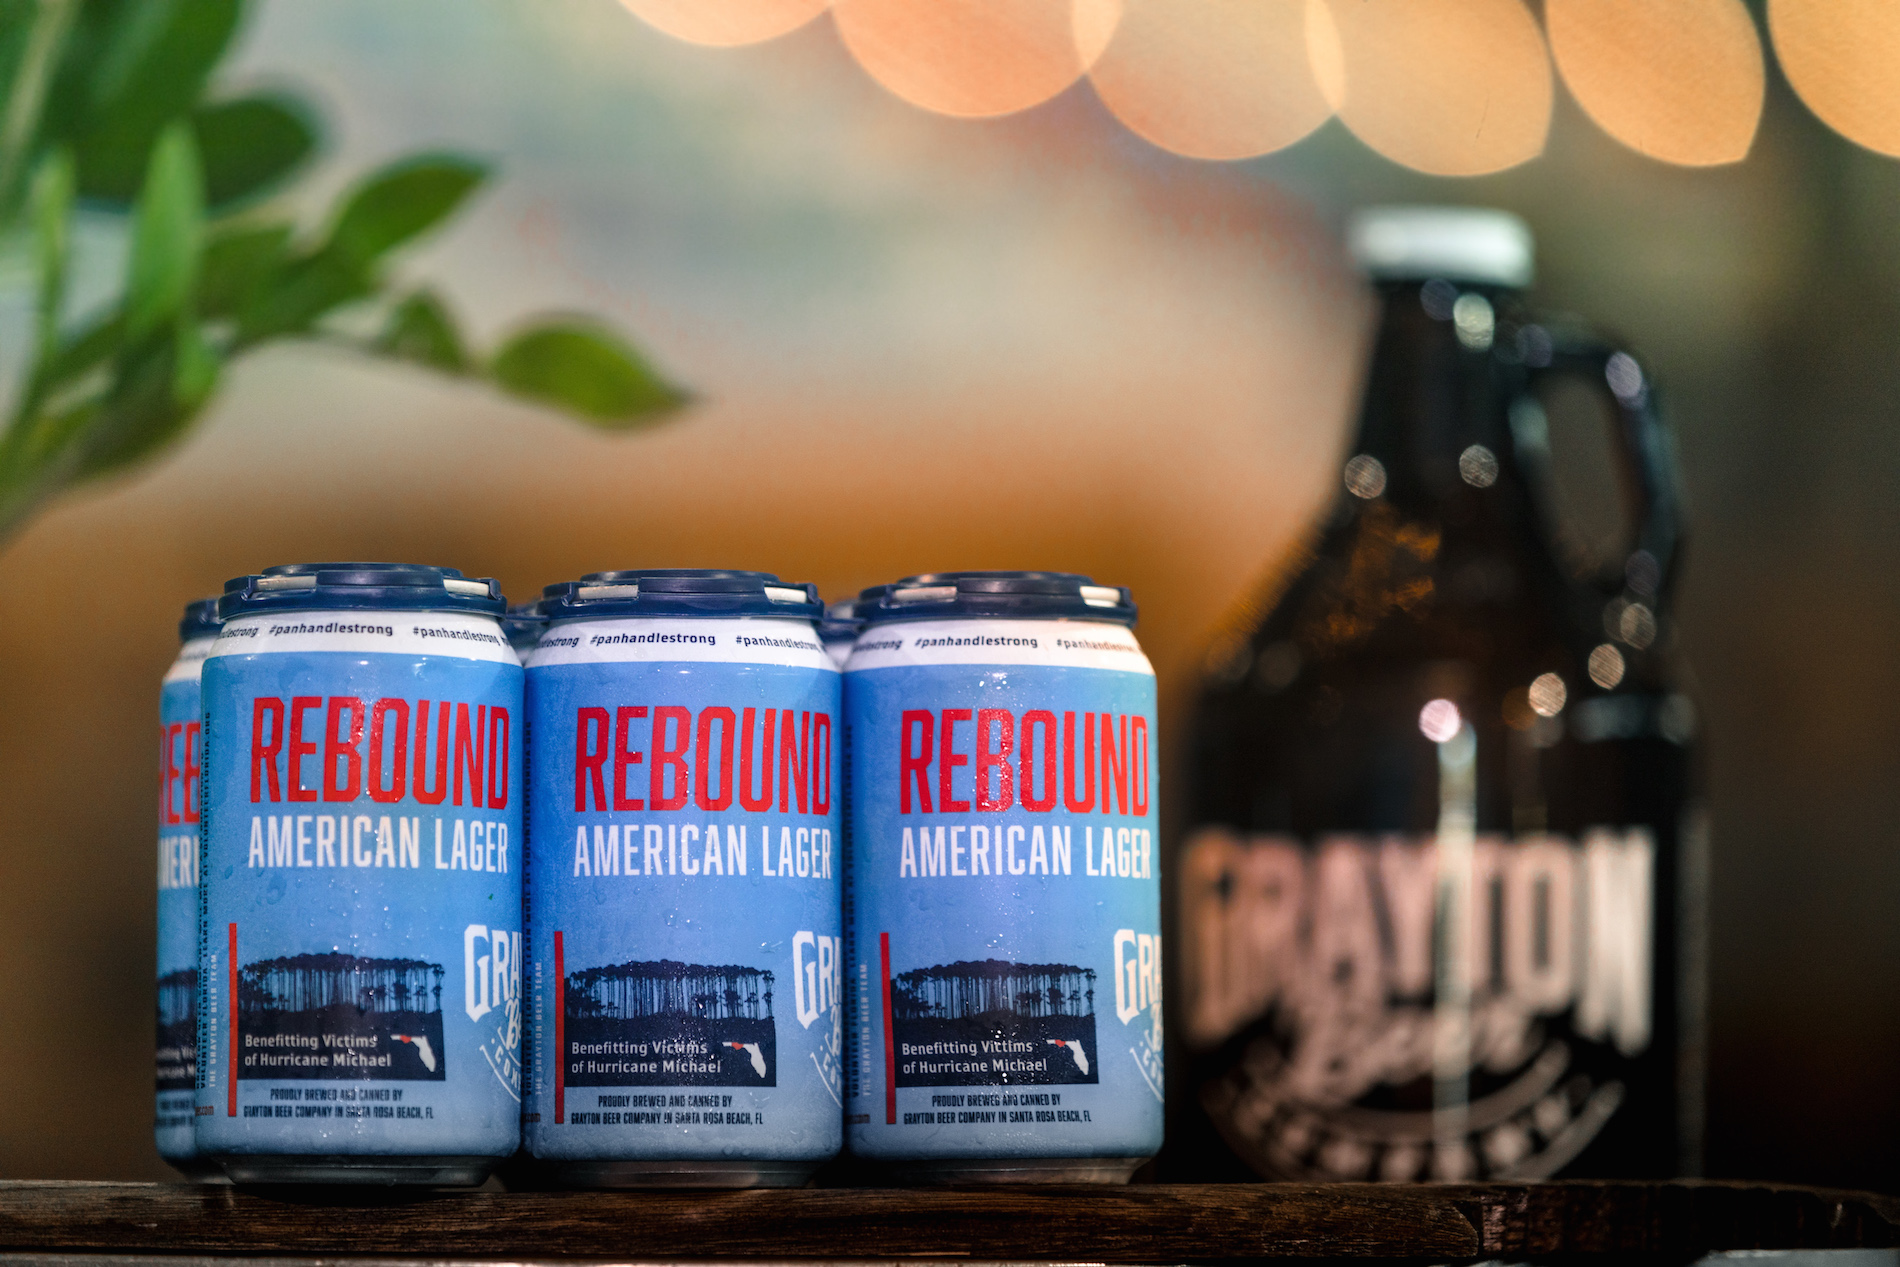 Grayton Beer Company Rebound American Lager for Hurricane Michael relief November 2018